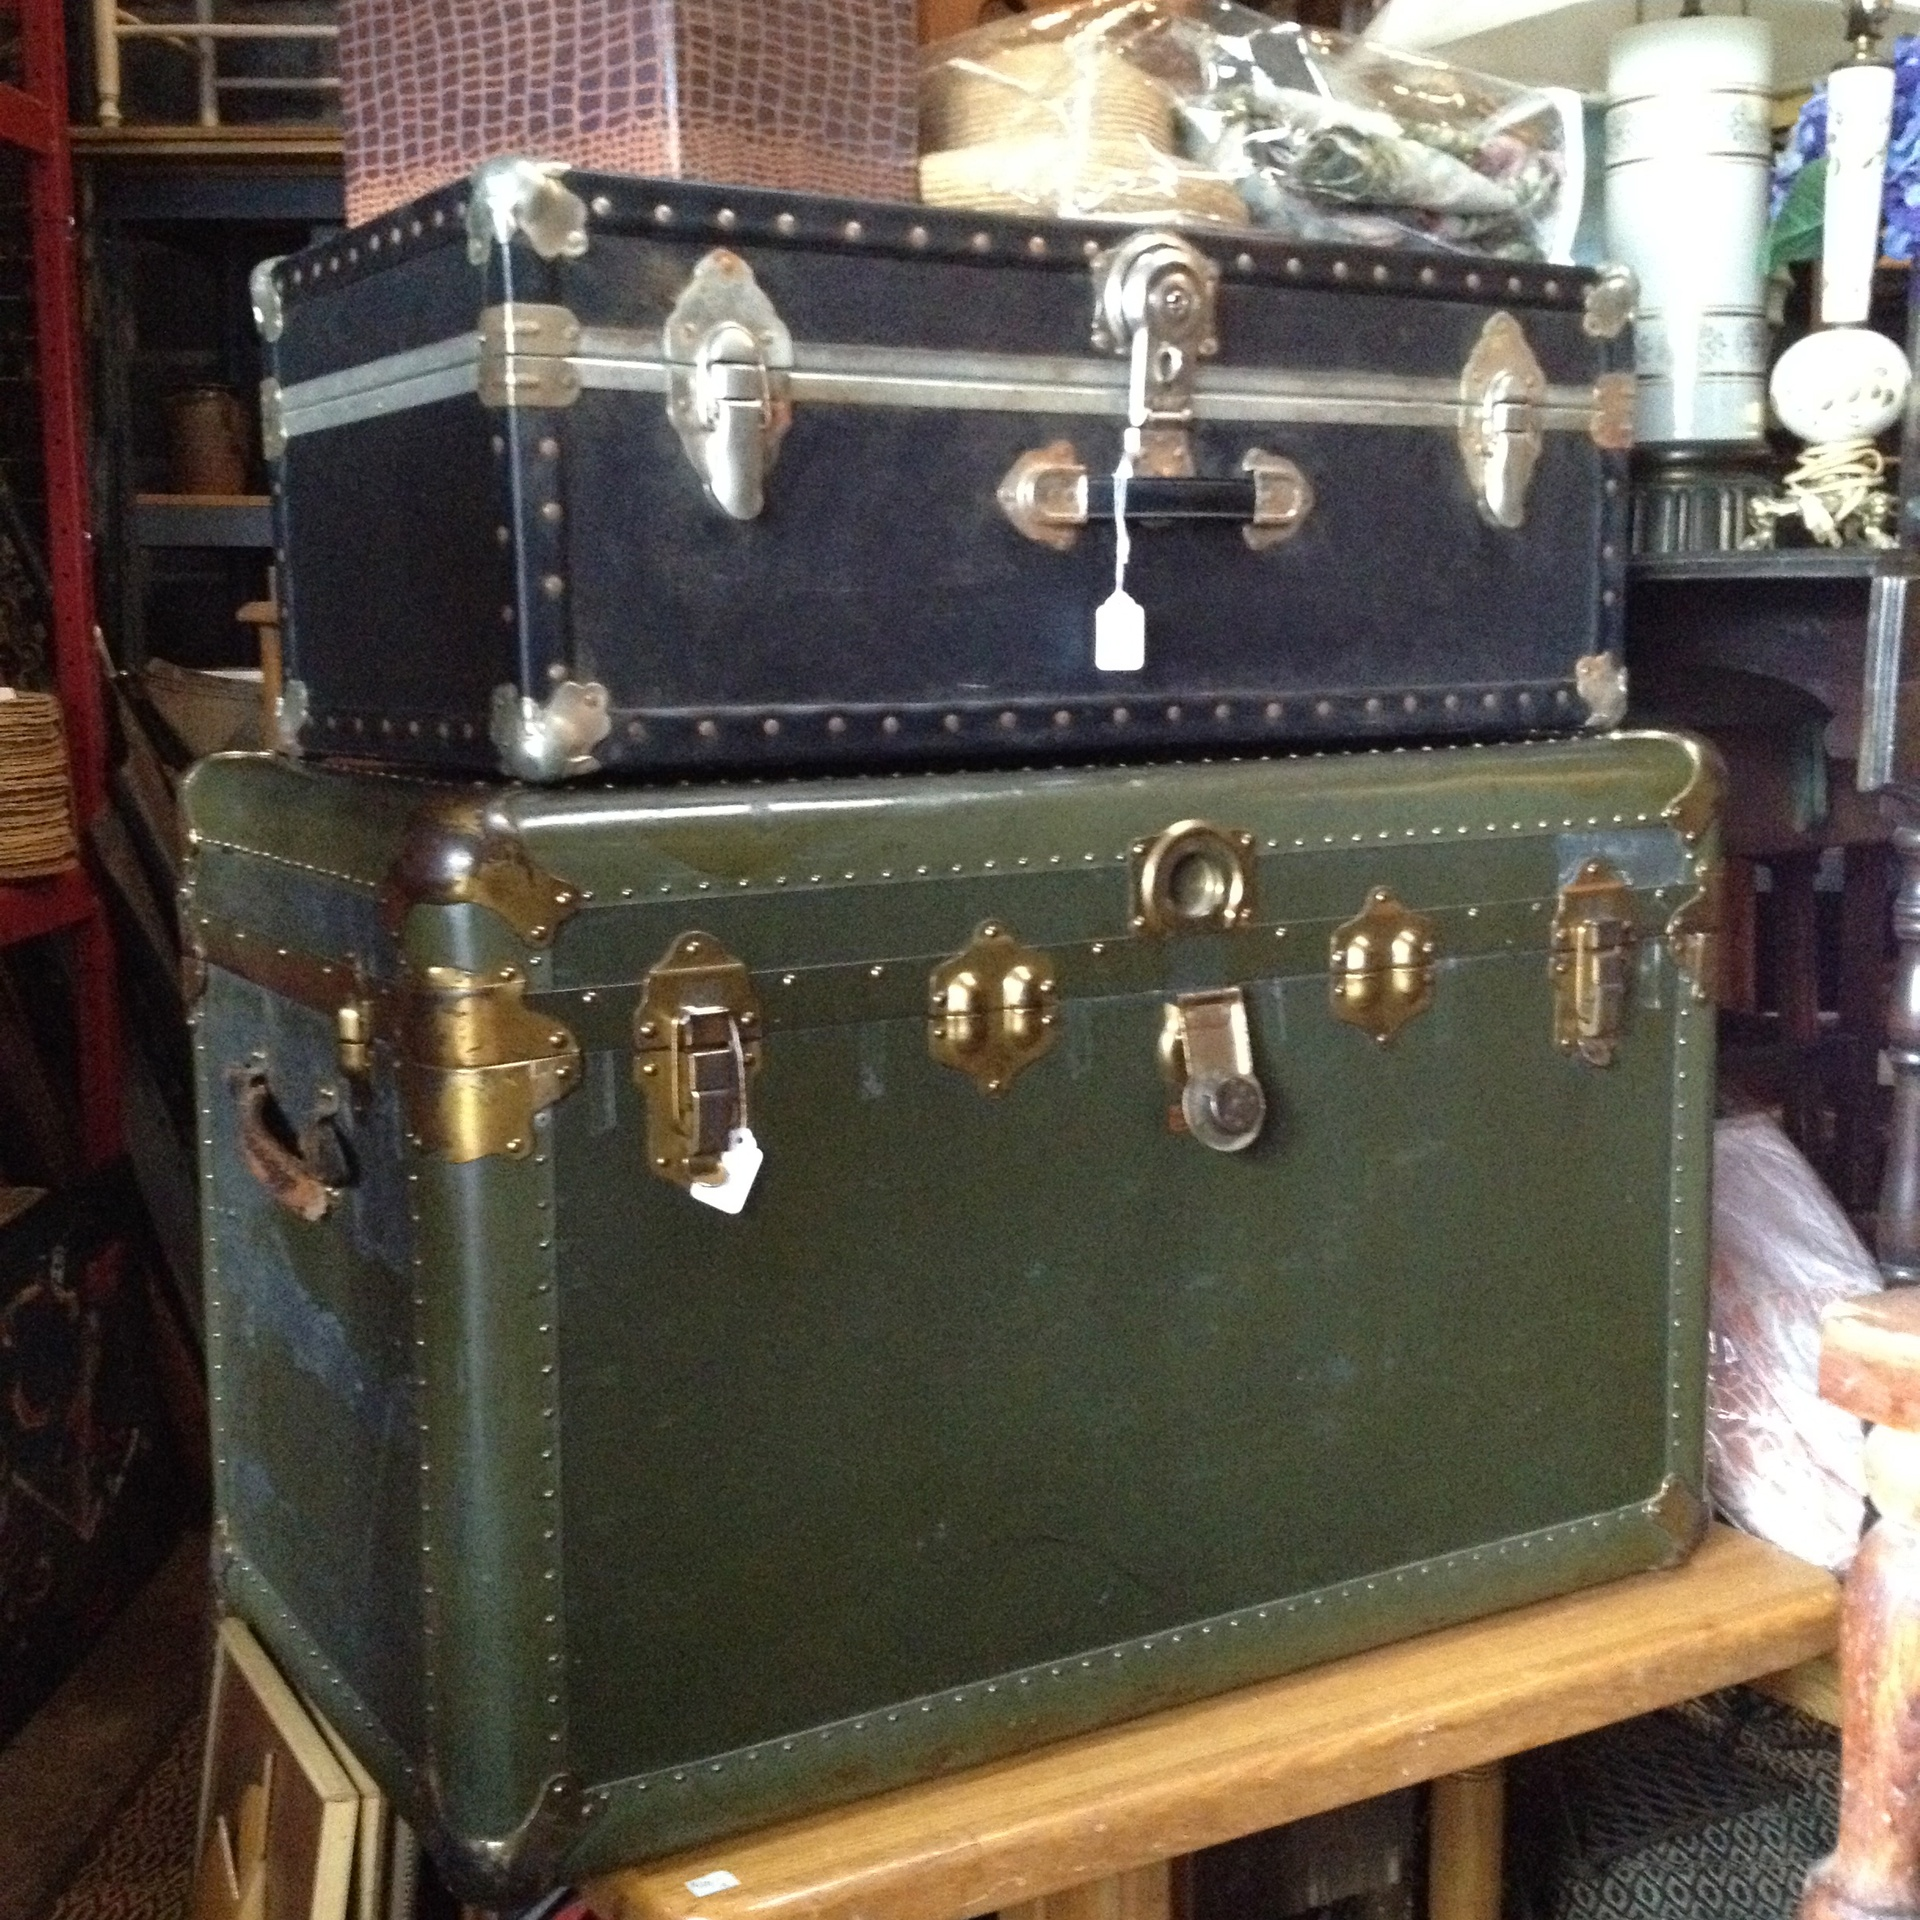 Stacks of Steamer Trunks